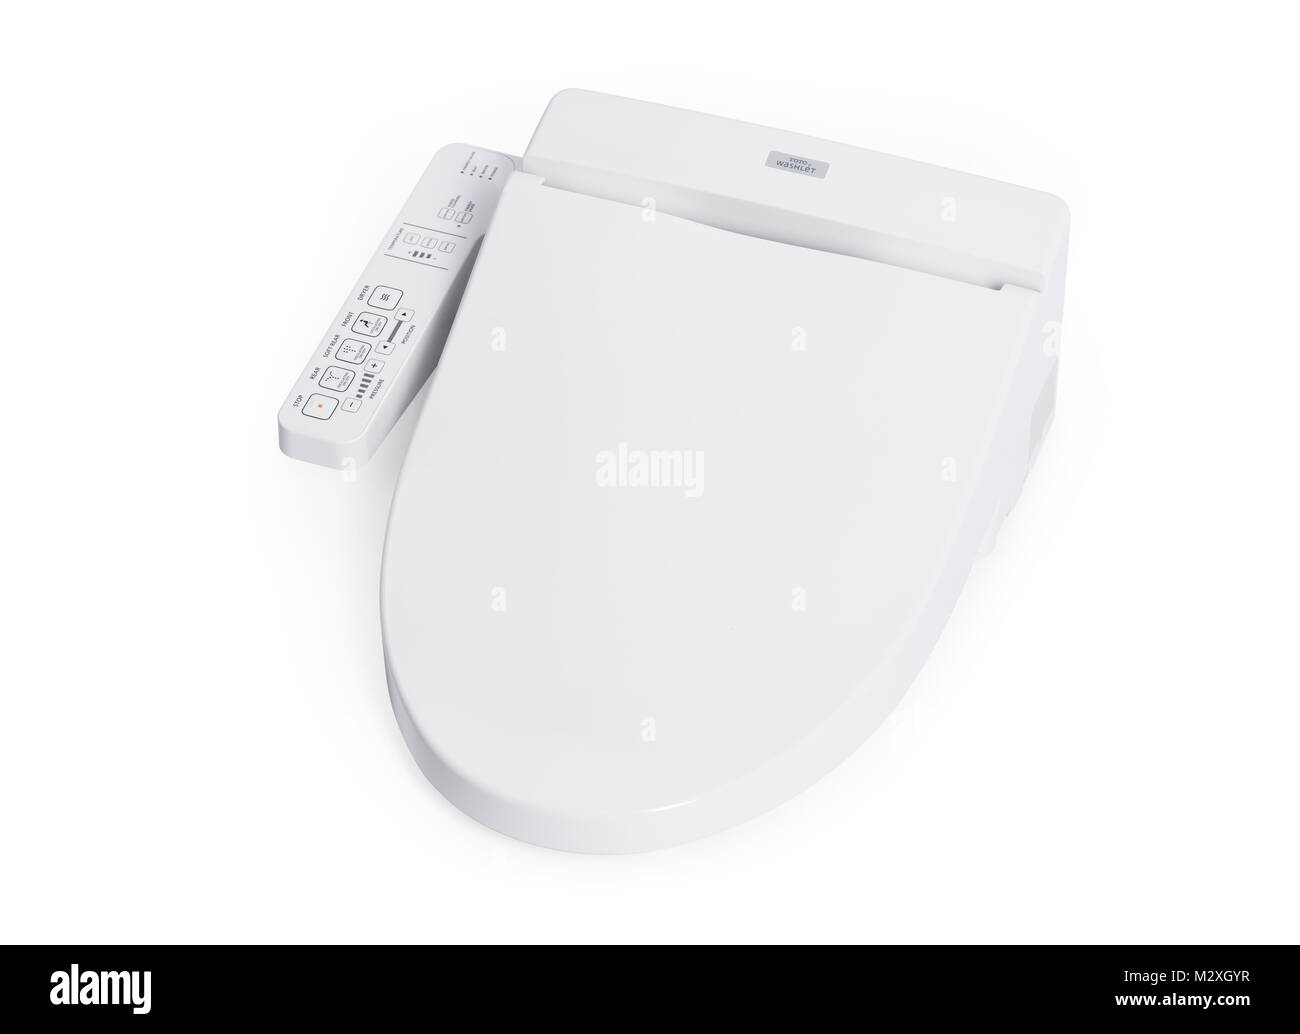 Sensational Toto Washlet Bidet Toilet Seat Isolated On White Background Pdpeps Interior Chair Design Pdpepsorg